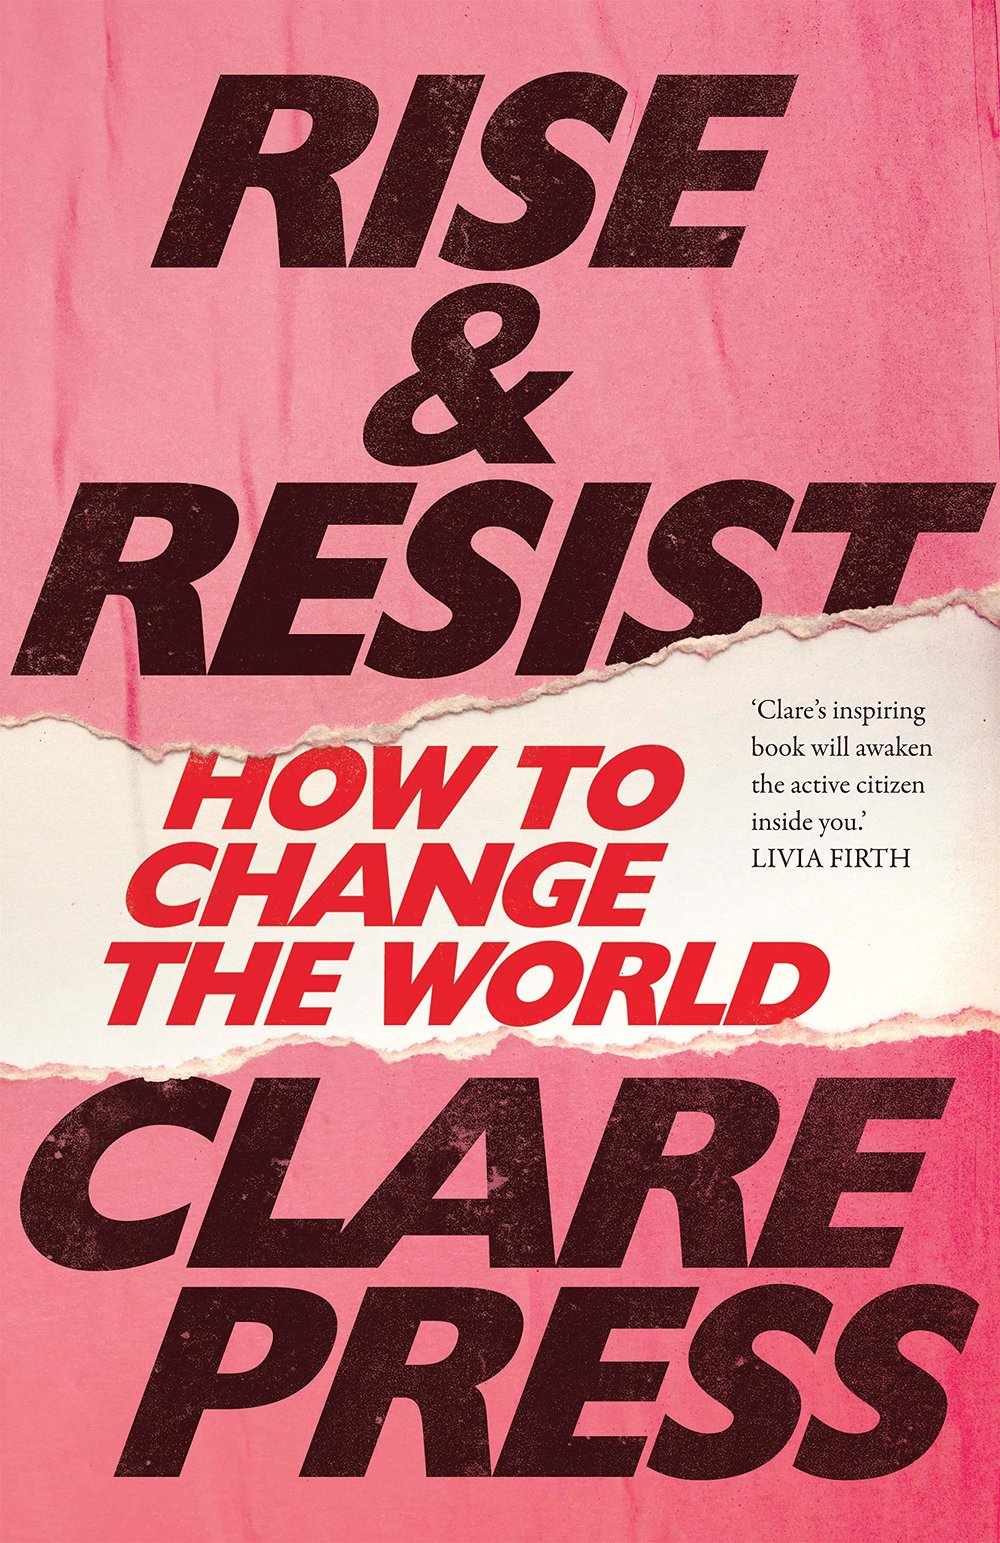 """Megan Doyle, Digital Editor: """"I'm reading Rise and Resist: How to Change The World, a fantastic book by Australian fashion journalist Clare Press. It's all about the history and resurgence of activism through revolutionary acts of protest, craftivism and grassroots movements around the world. It's inspiring to read that small acts of rebellion can affect global change!"""" -"""